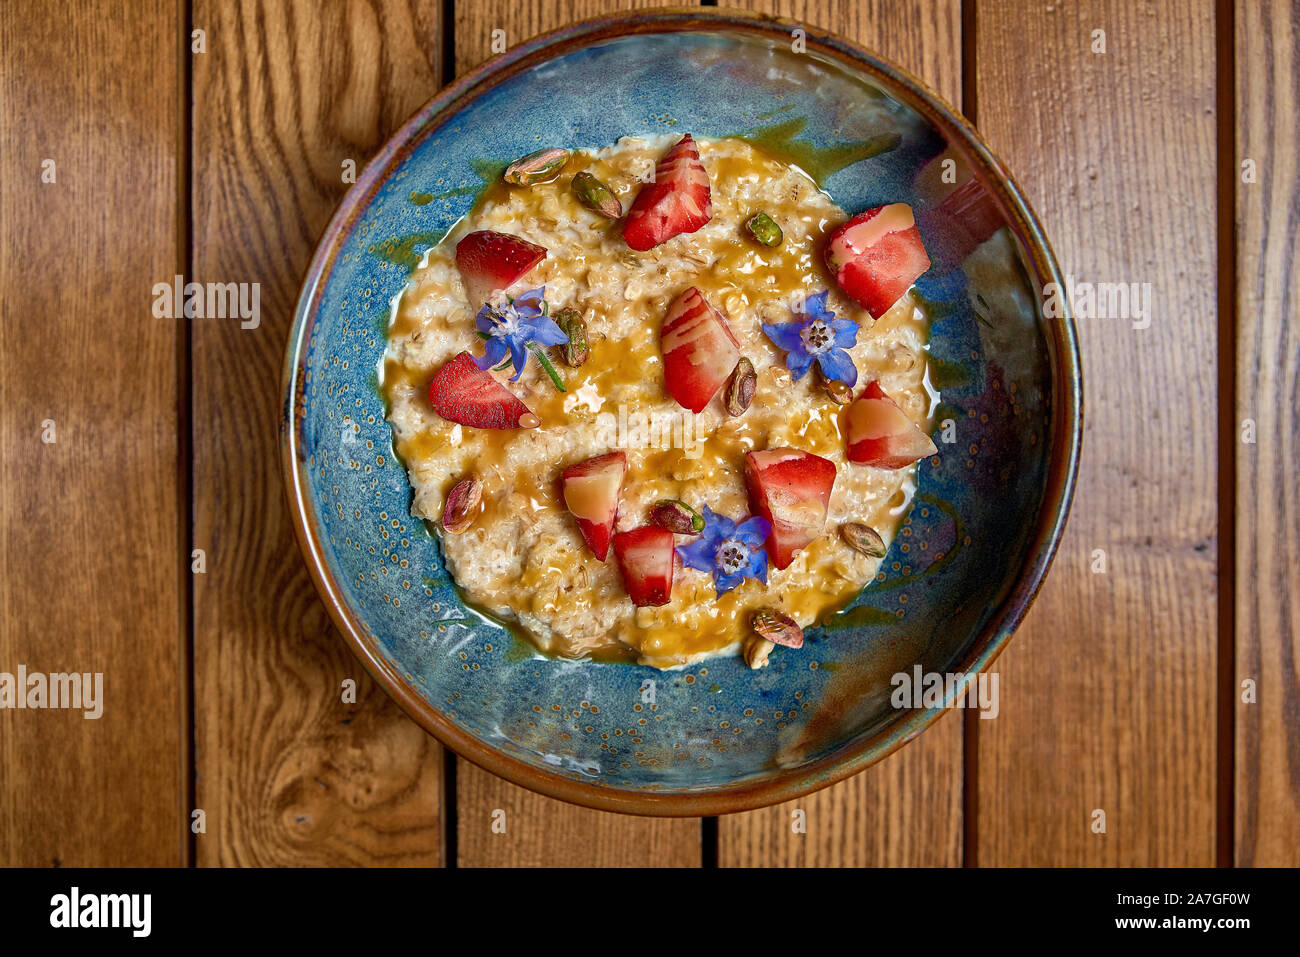 Granola for breakfast with berries and caramel. Oatmeal flakes or granola with strawberries. The concept of diet, healthy eating and eating. Top view, Stock Photo